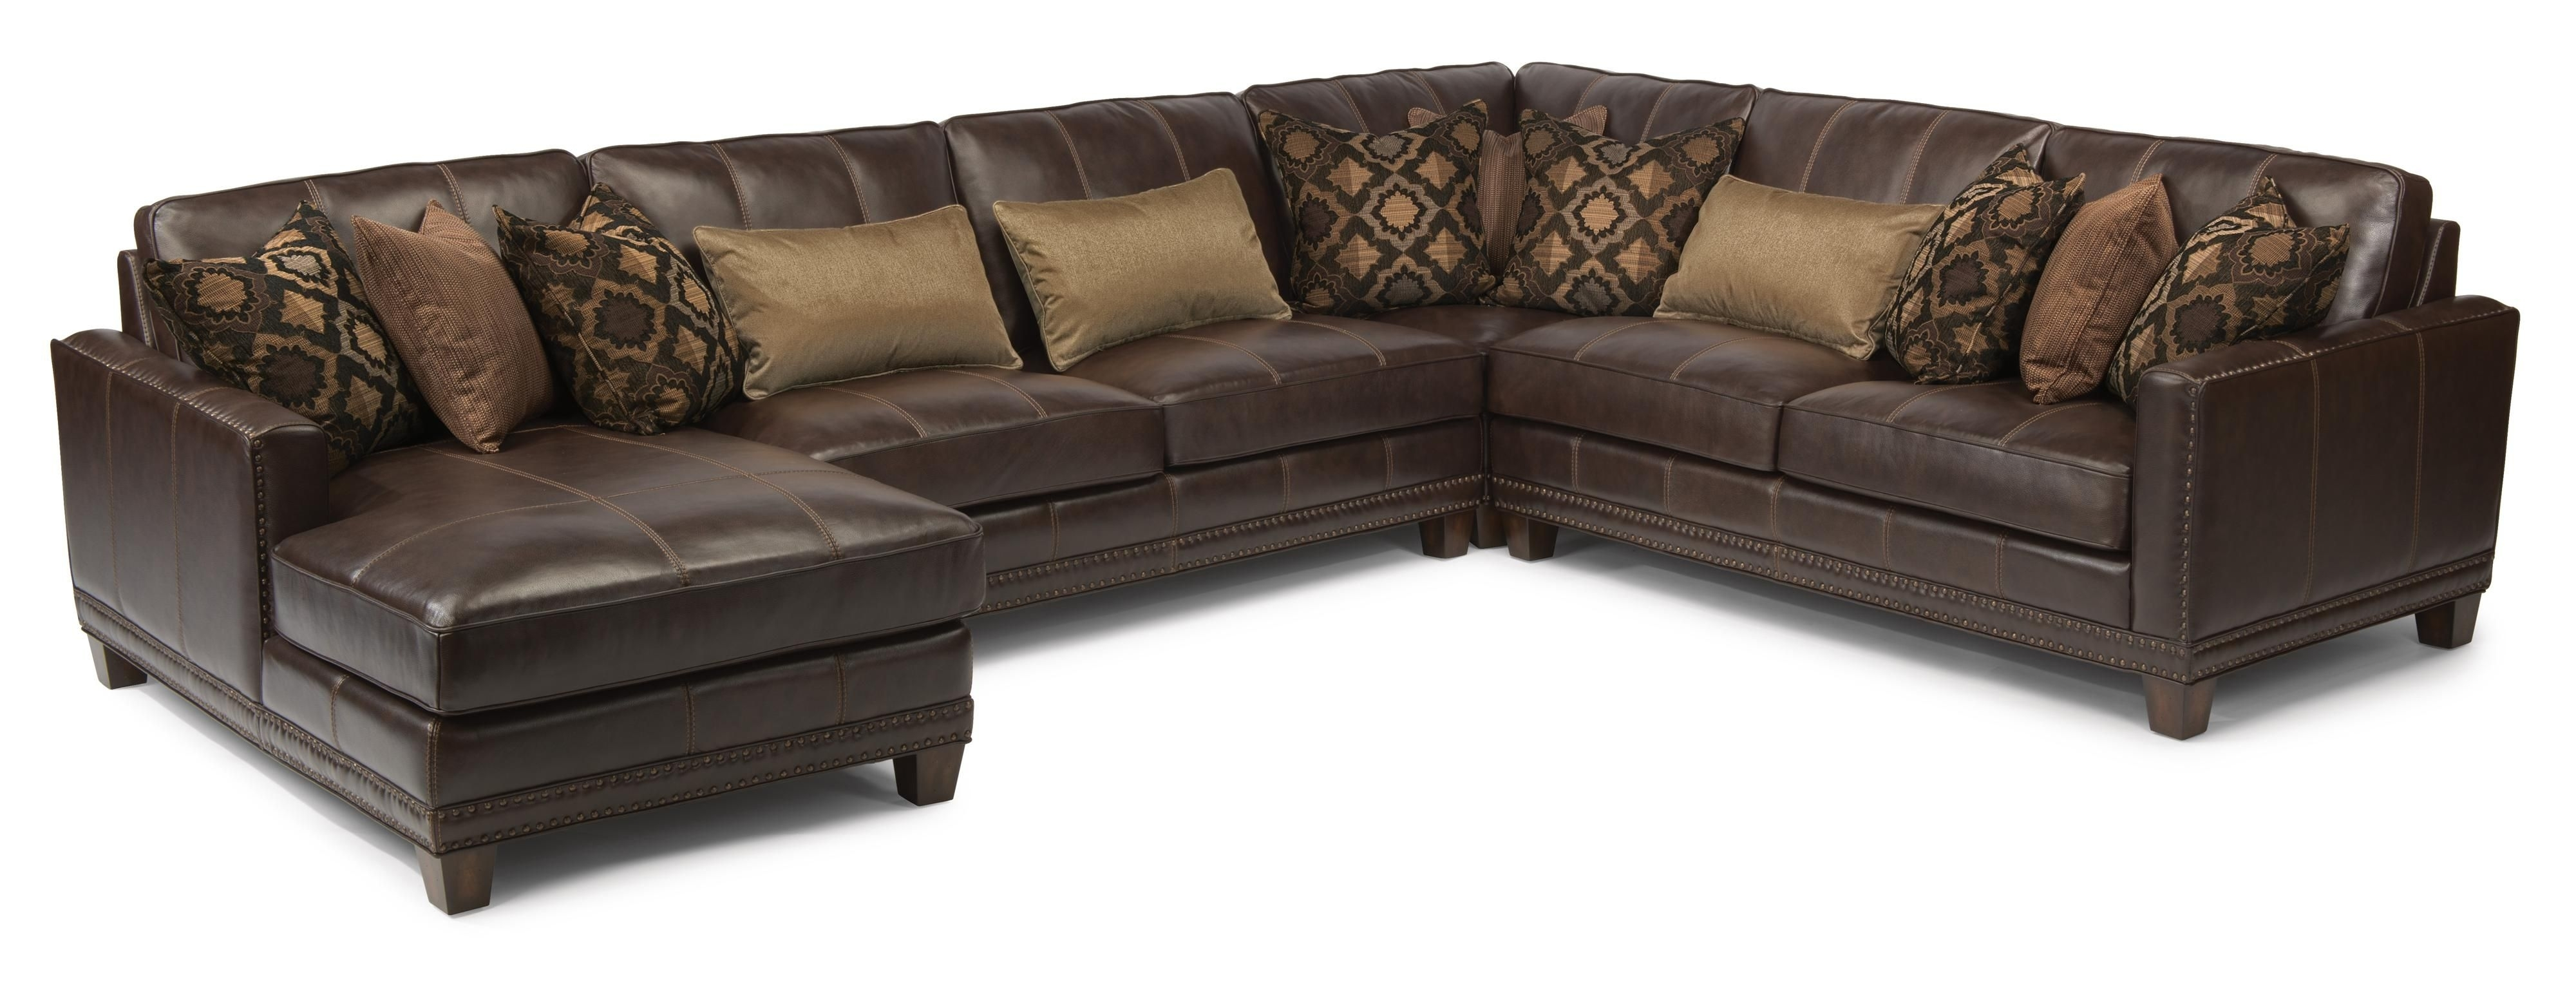 Latitudes – Port Royal Transitional Four Piece Sectional Sofa With Within Johnson City Tn Sectional Sofas (Image 5 of 10)